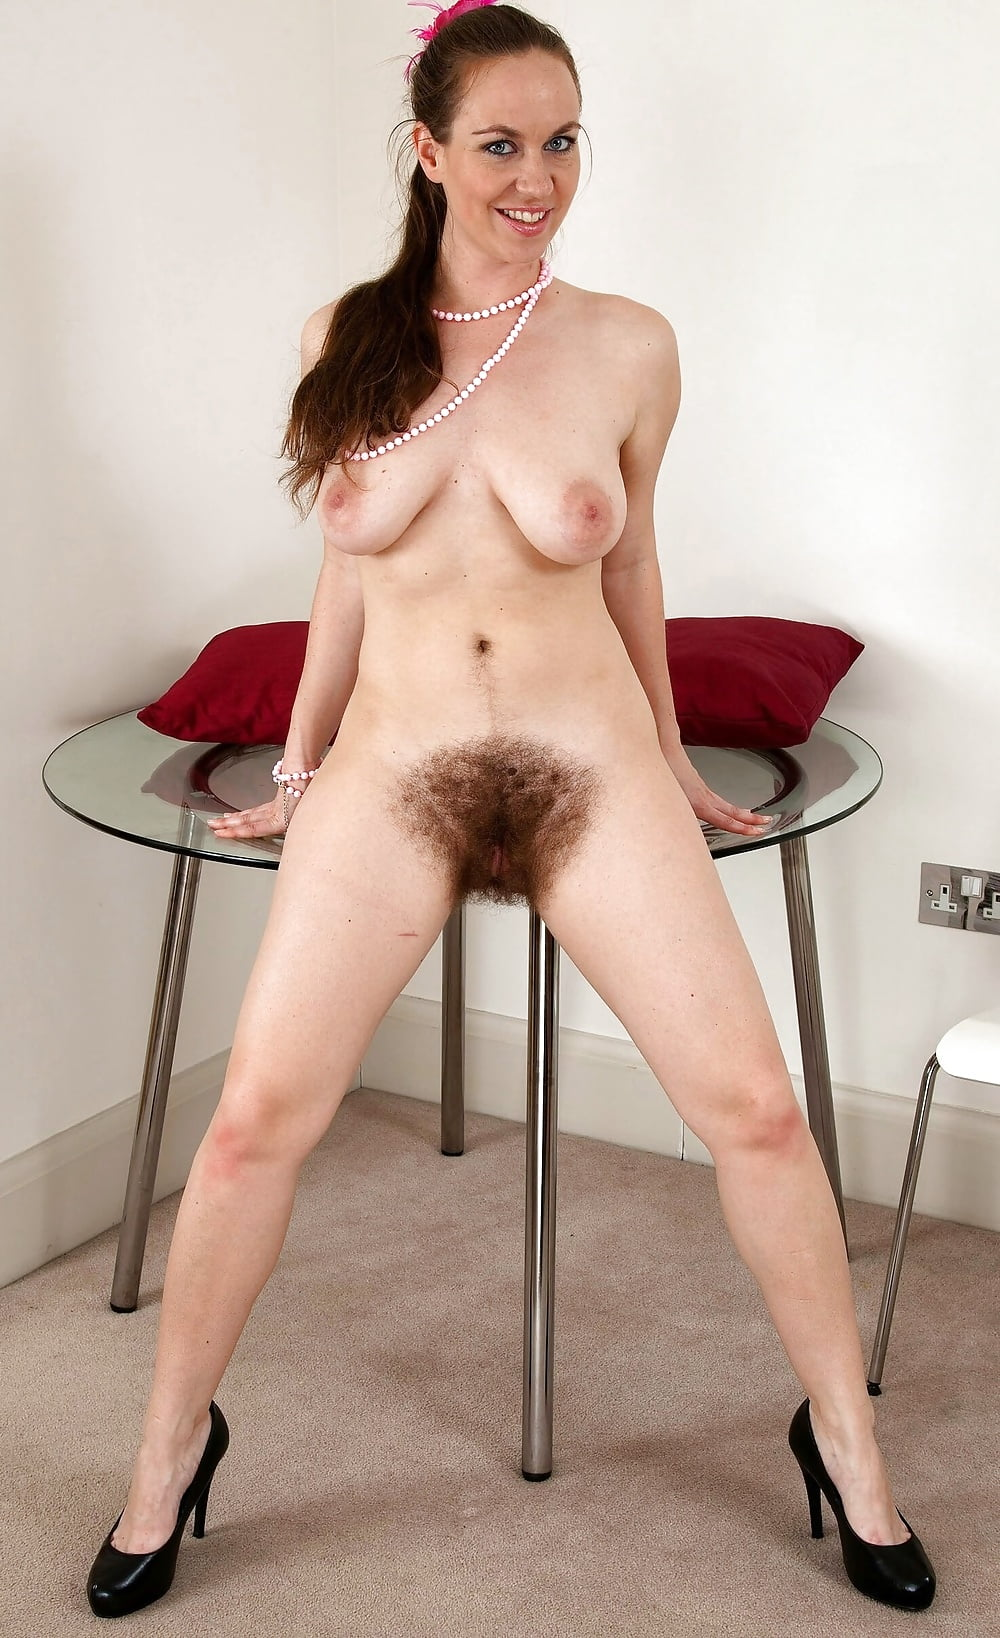 turner-standing-woman-nude-hairy-naked